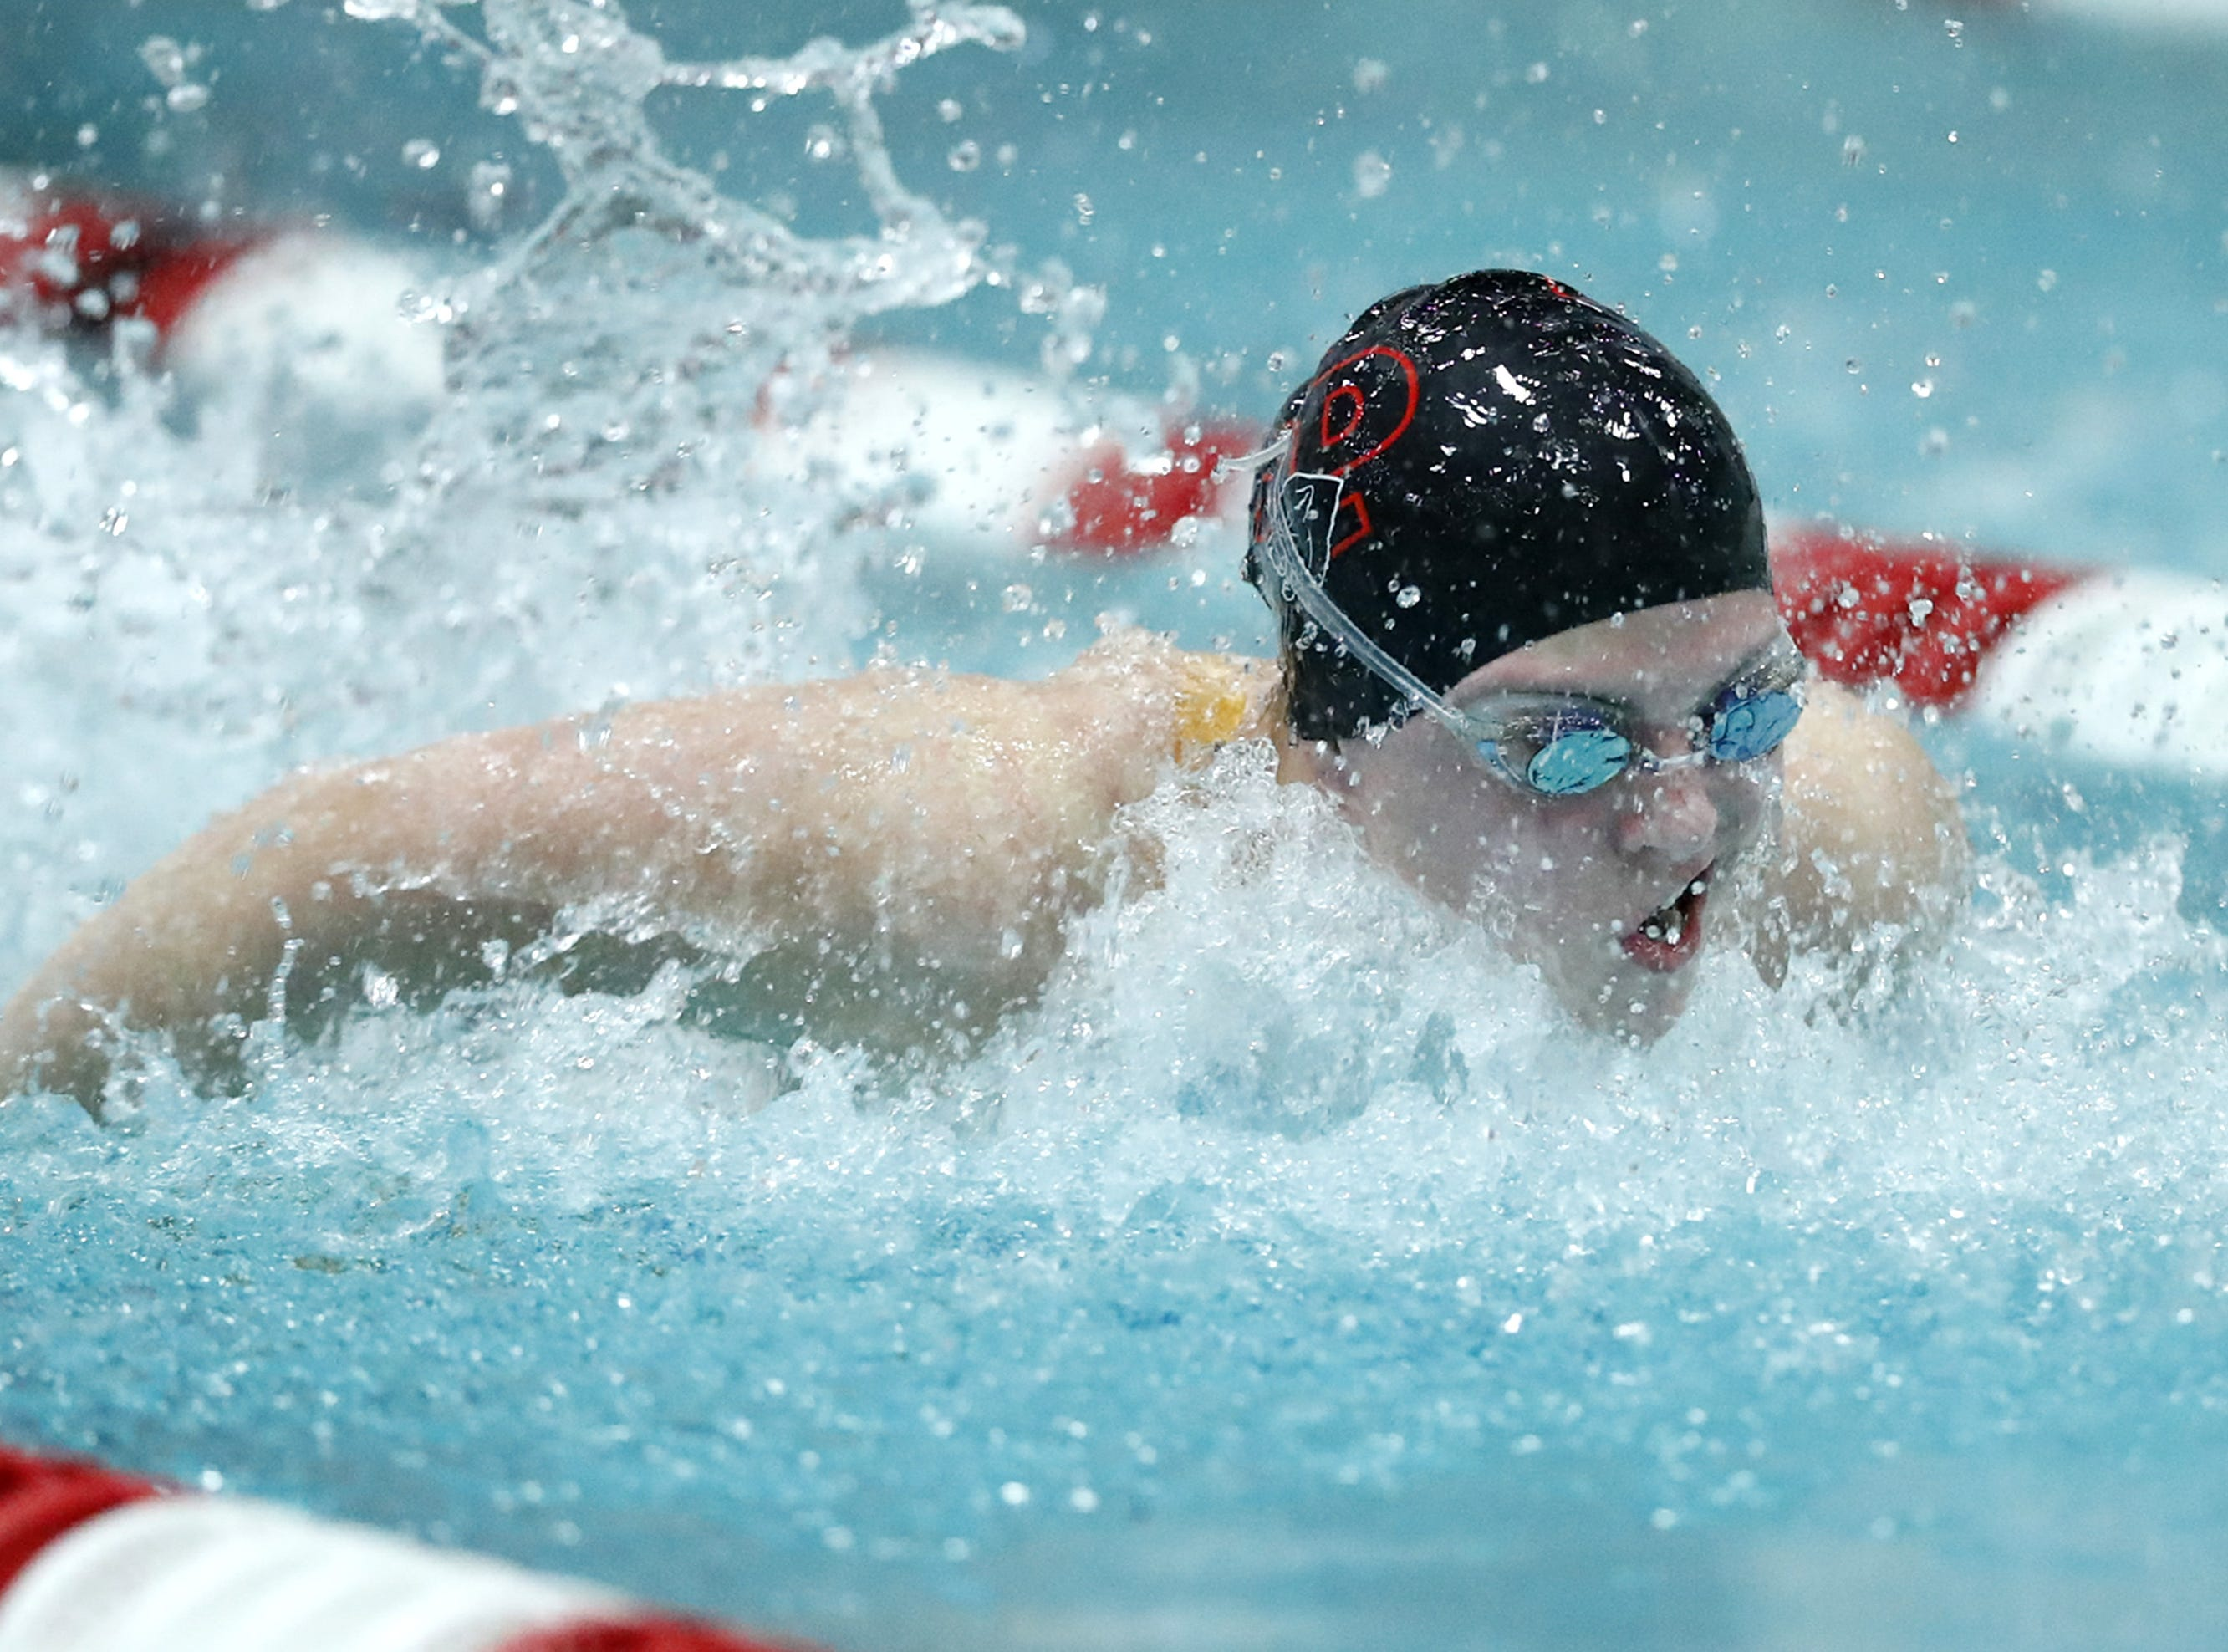 Stevens PointÕs Alaina Breitbach races in the 200 yard individual medley during the WIAA Division 1 State Swimming and Diving meet Saturday, Nov. 10, 2018, at the UW Natatorium in Madison, Wis. Danny Damiani/USA TODAY NETWORK-Wisconsin